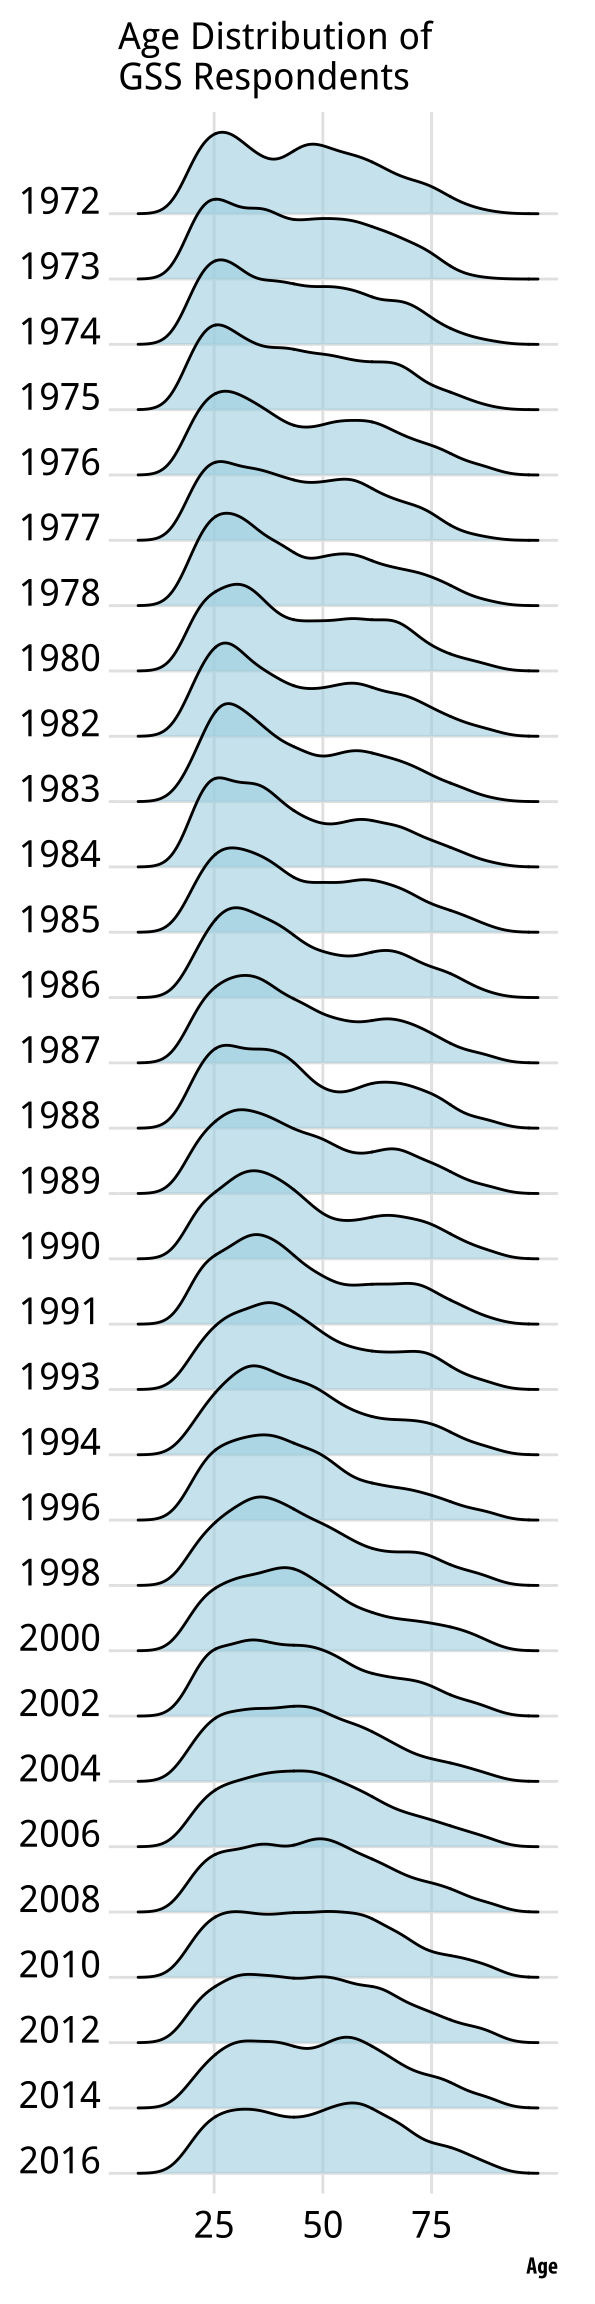 A ridgeplot version of the age distribution plot.